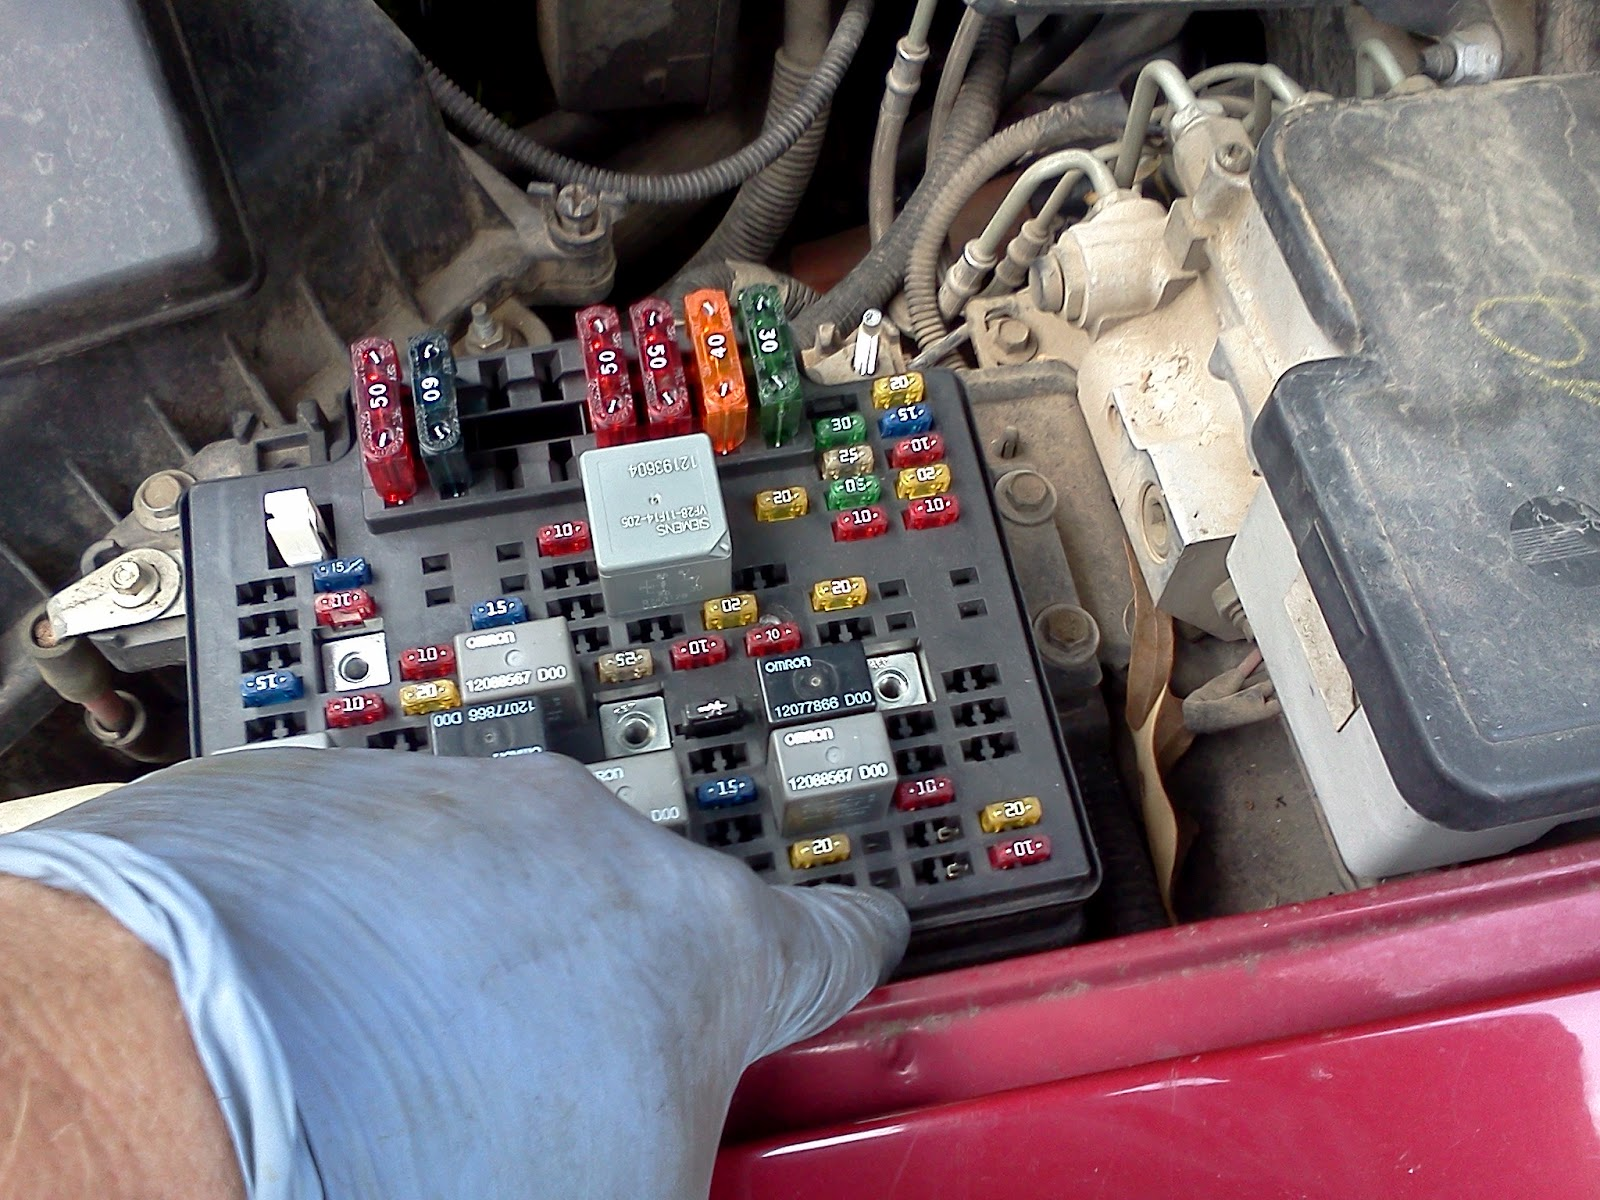 Chevy S10 Lights Diagram Wiring Schemes 2001 F150 Fuse Box Under Hood Timthetech 1998 Chevrolet 2 Brake Not Working